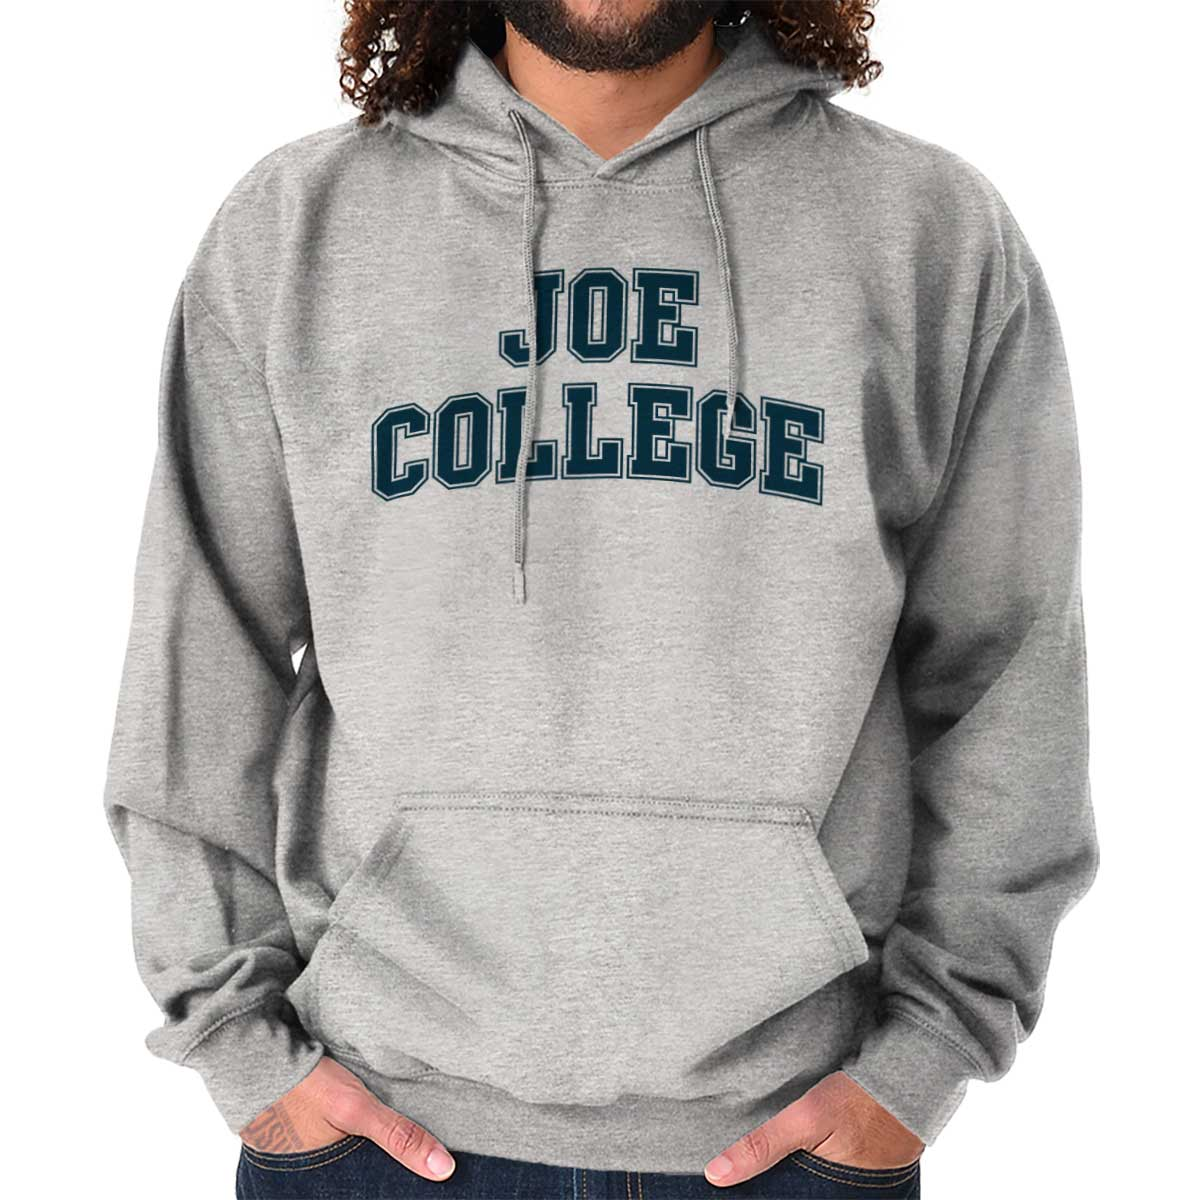 Party Pooper Hoodie Funny Rude Toilet College Frat Cool Pullover Hooded Hoodi